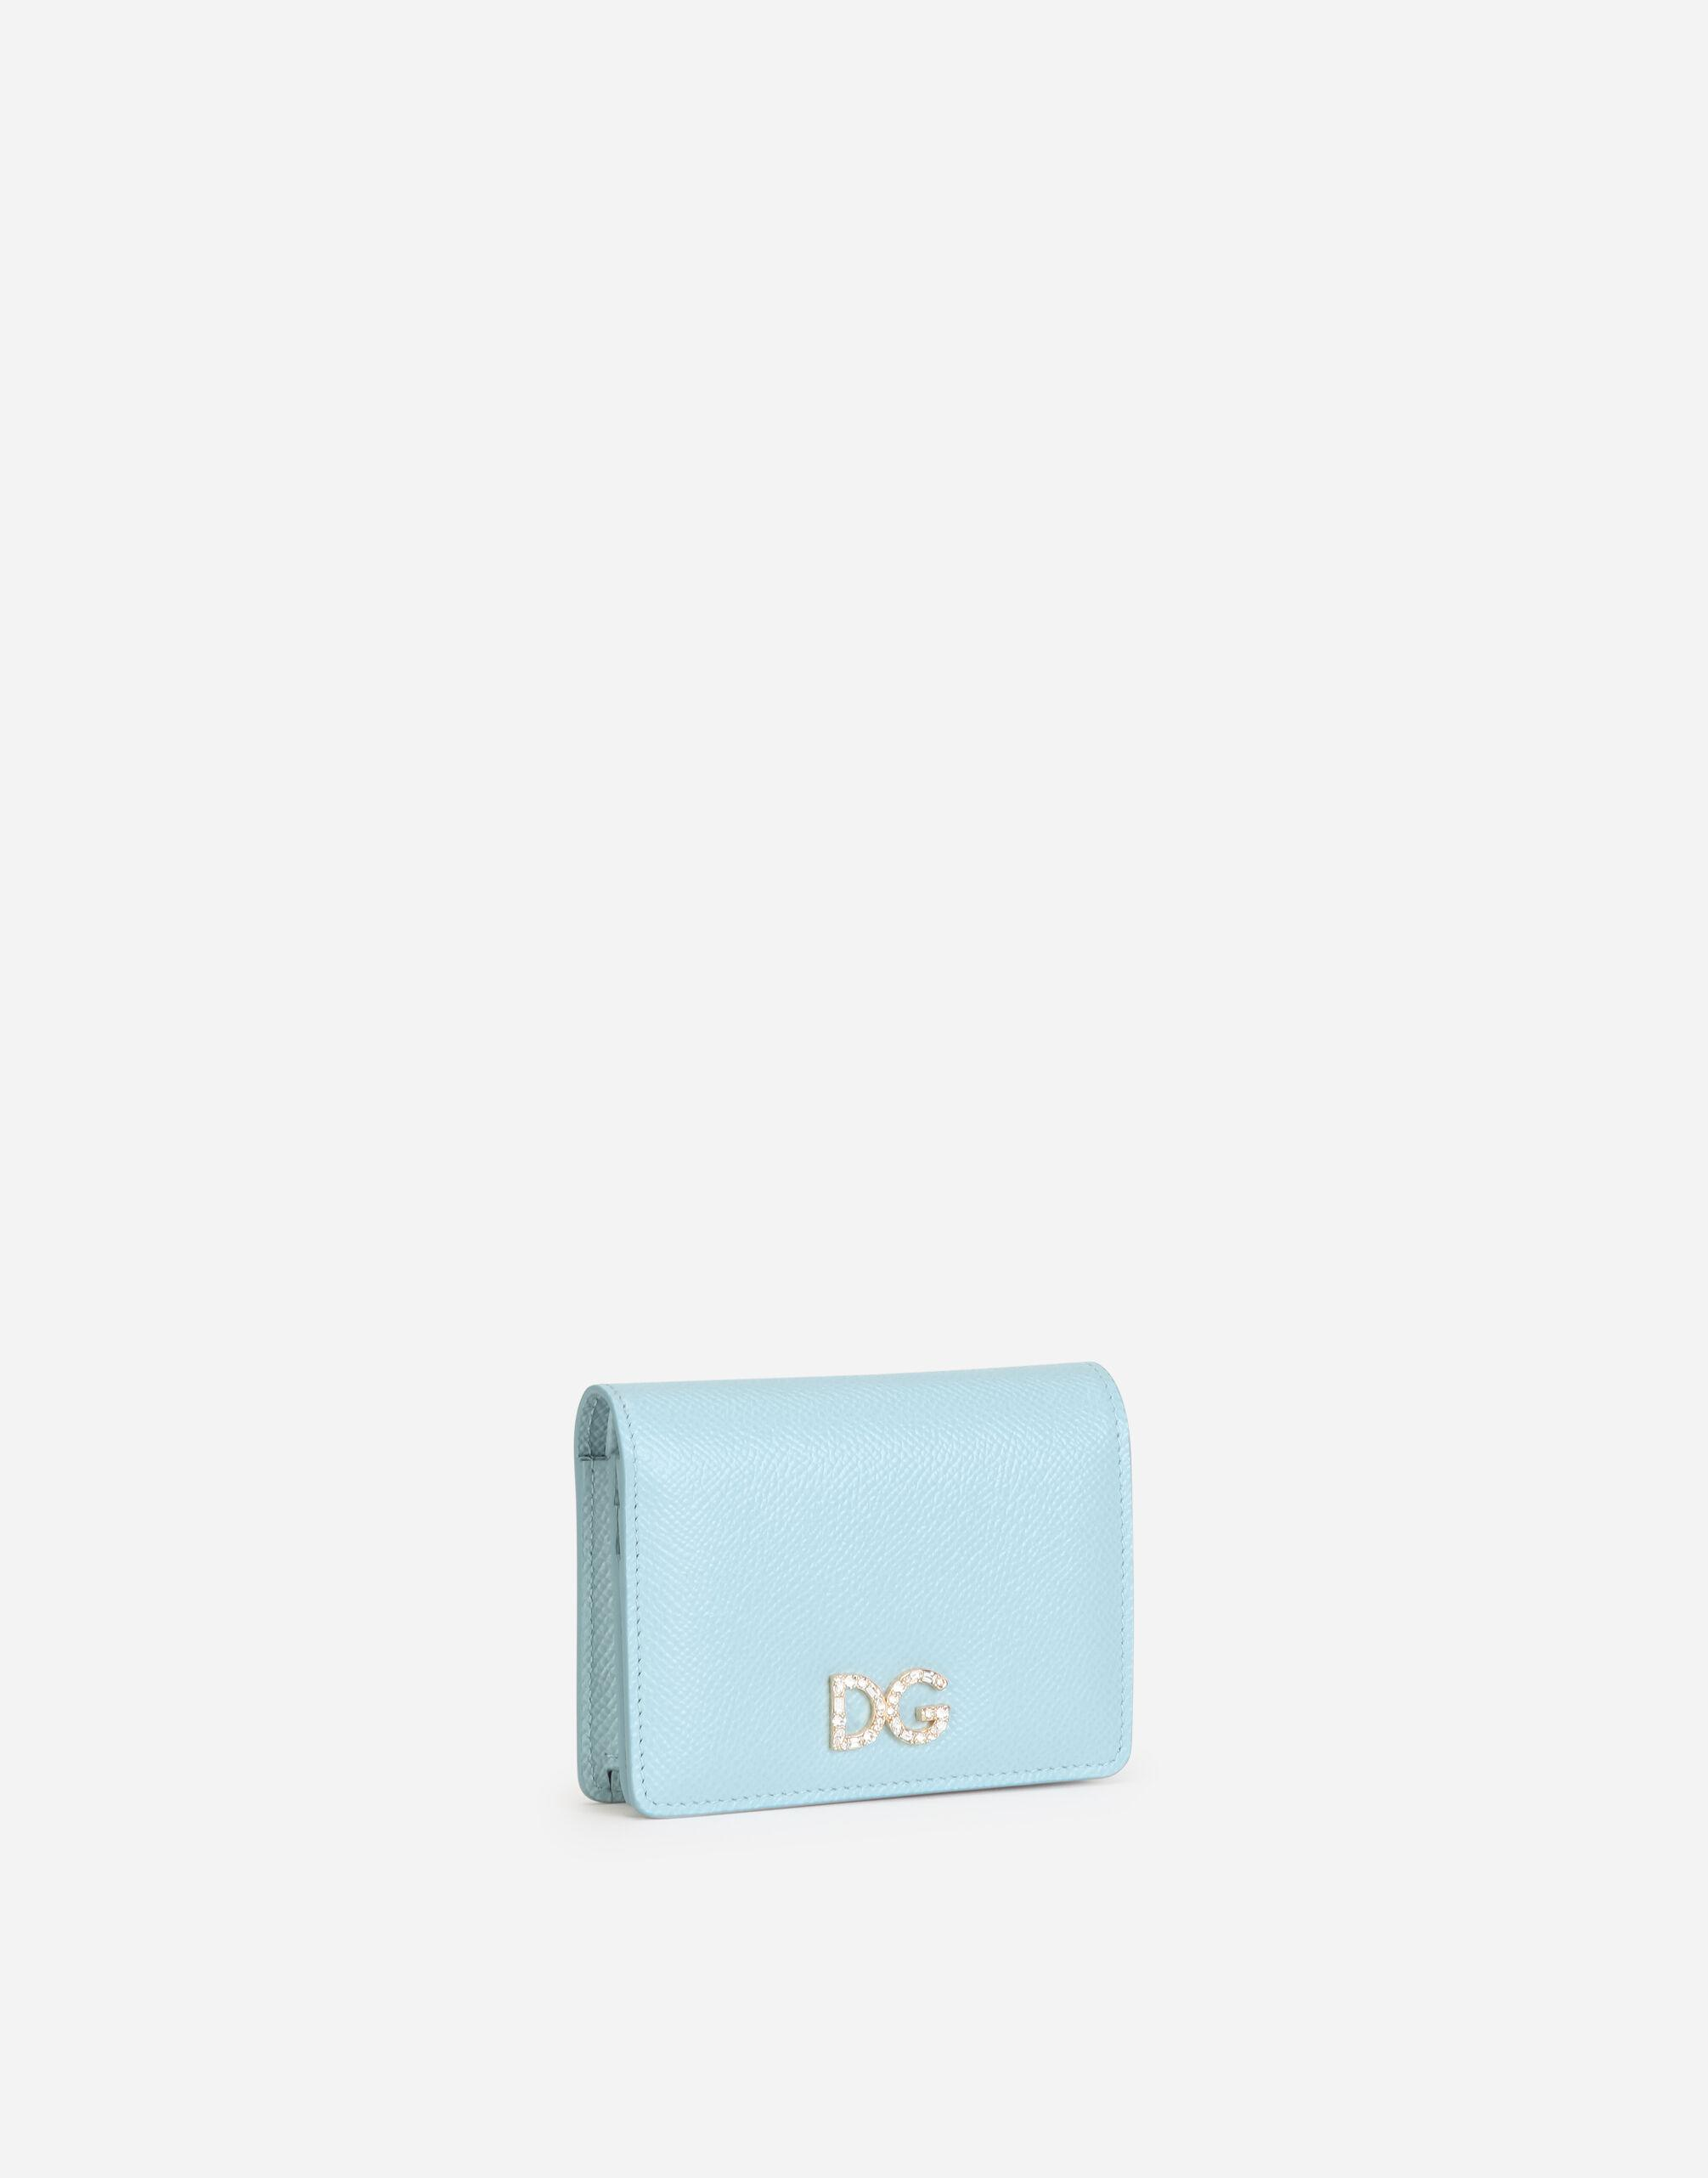 Small dauphine calfskin continental wallet with rhinestone-detailed DG logo 1